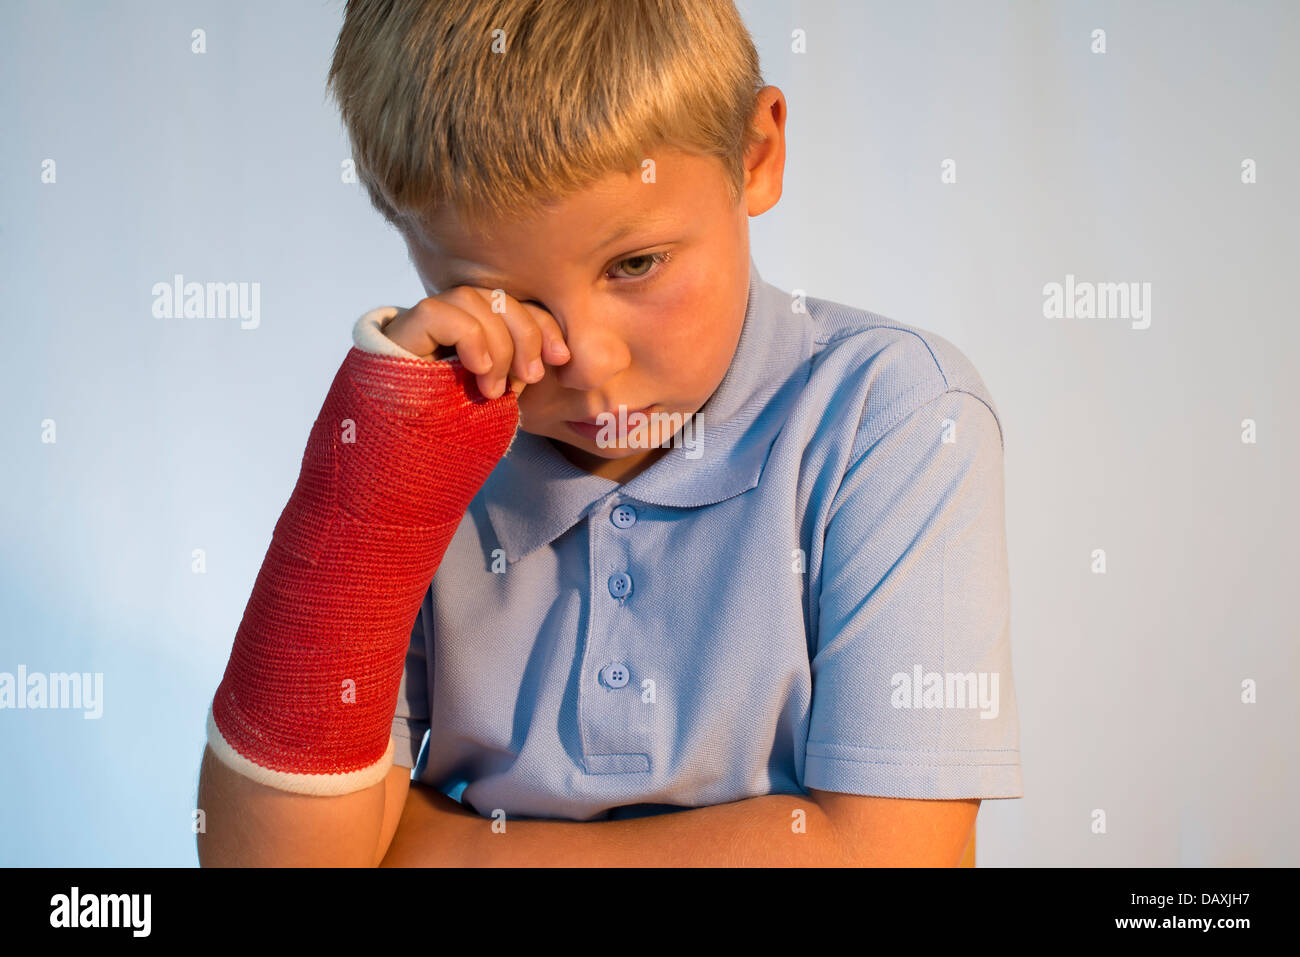 Sad young boy with arm in plaster cast. - Stock Image